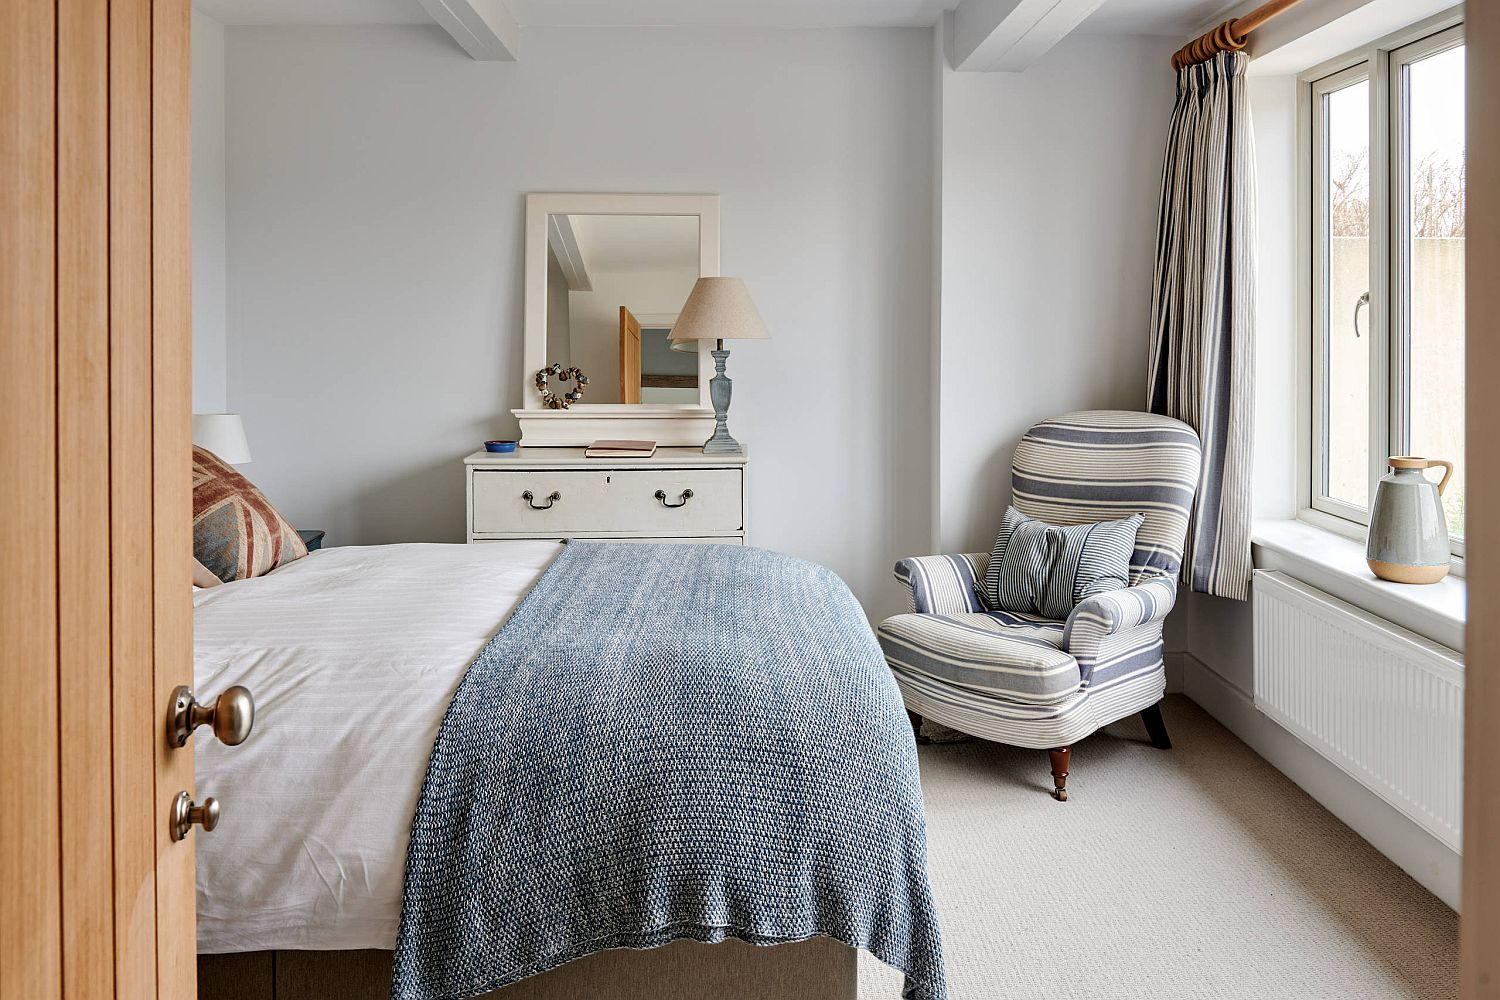 Comfy chair in the corner adds additional sitting space in the small bedroom